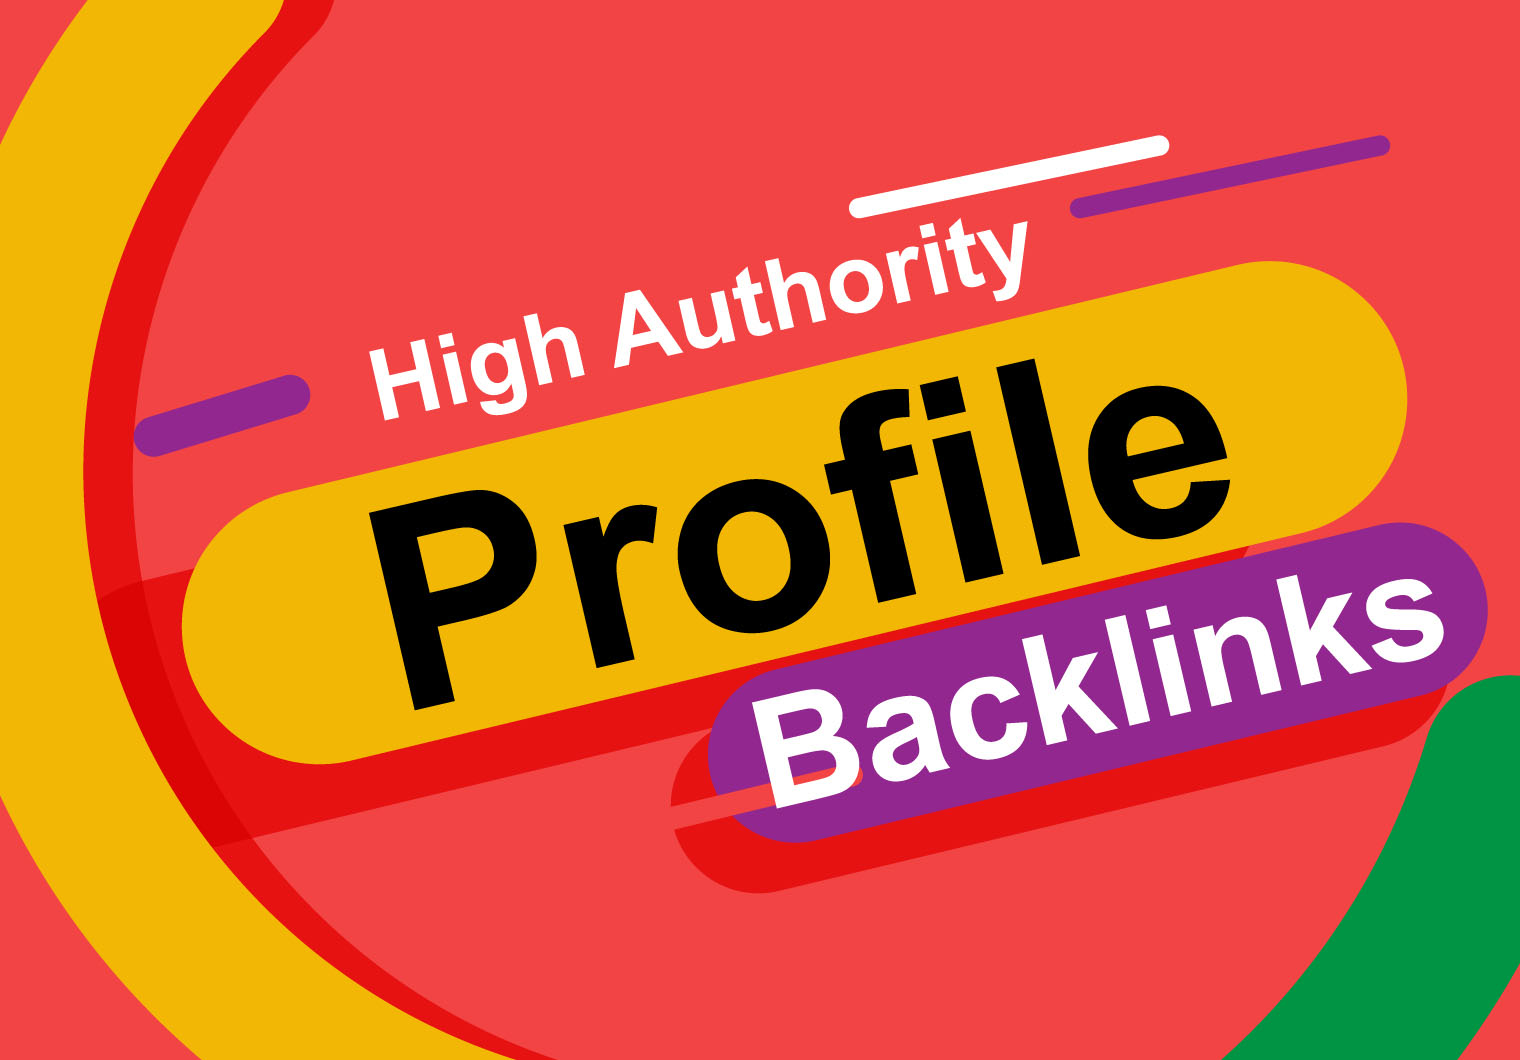 I will build 200 safe and permanent high authority Profile Creation Backlinks